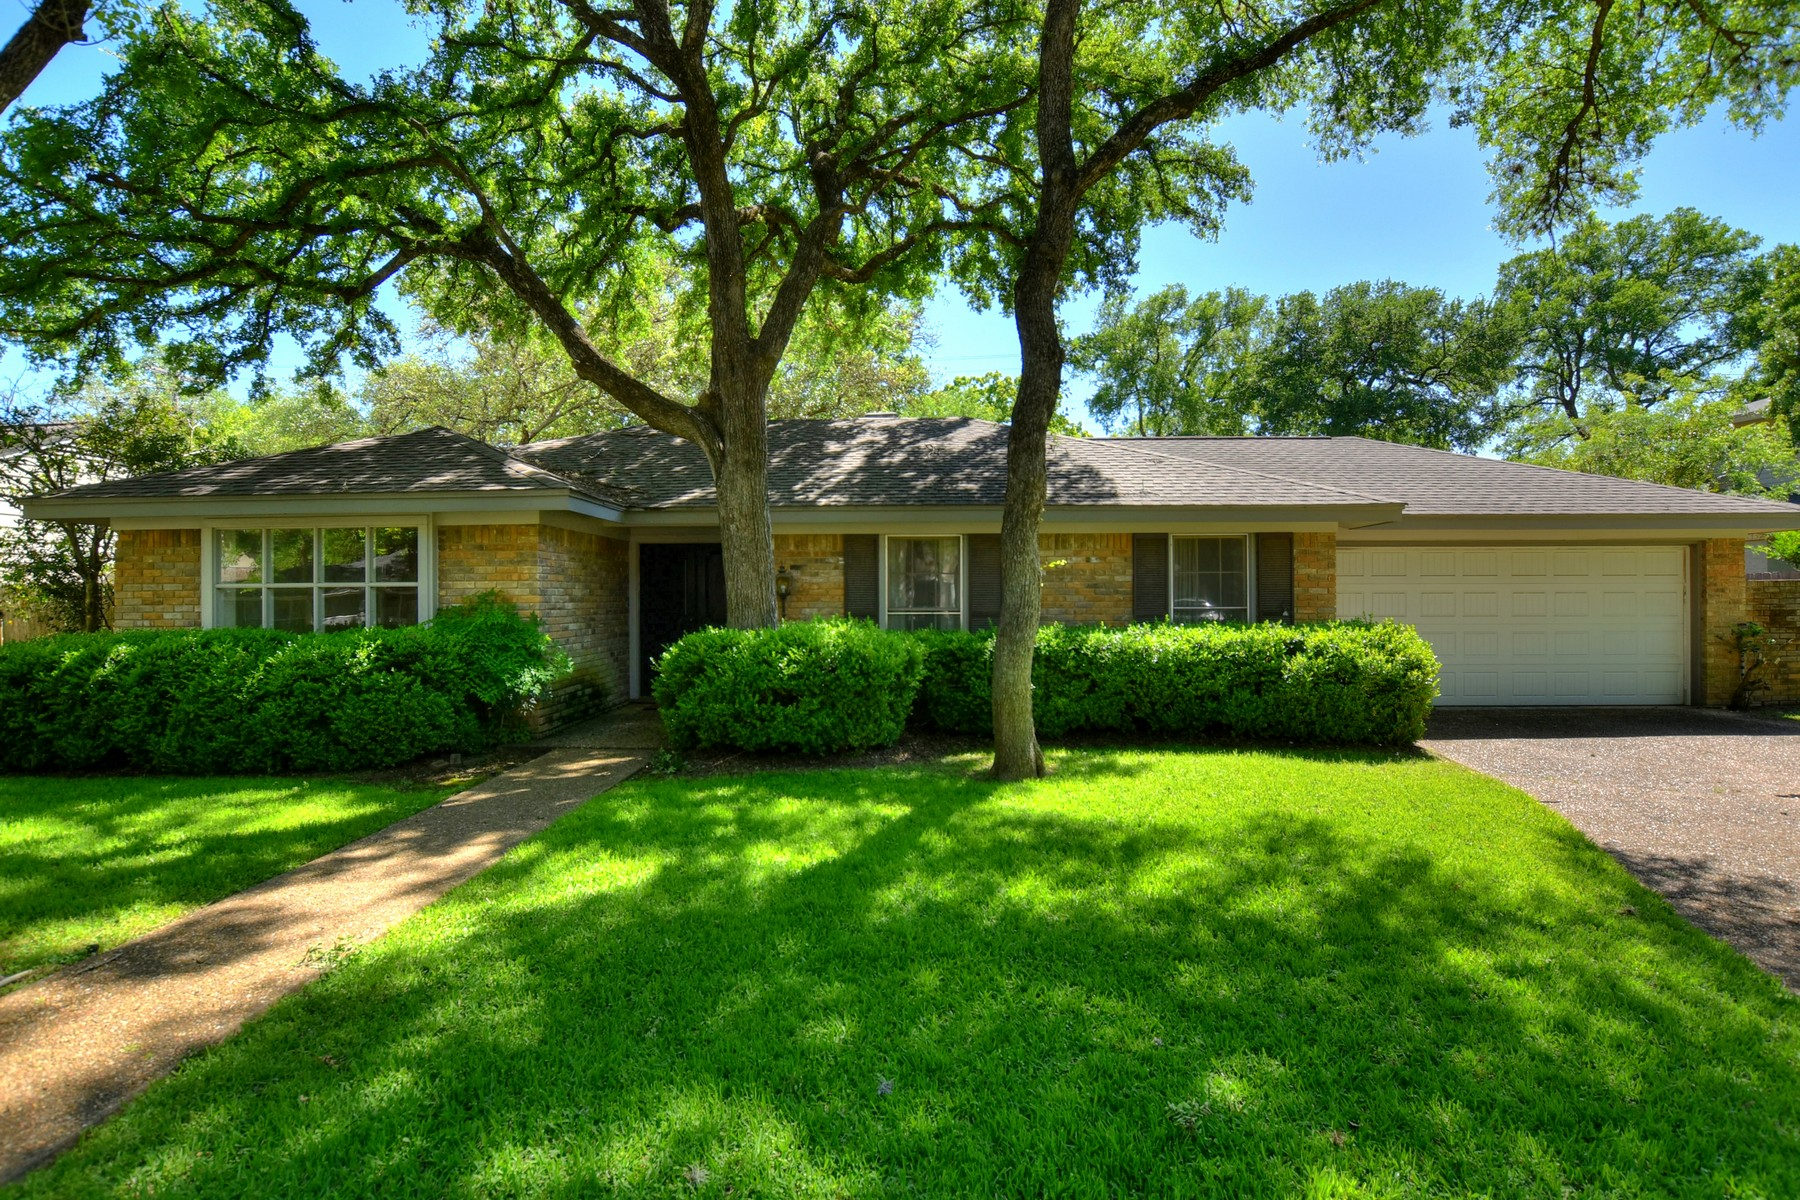 Single Family Home for Sale at Northwest Hills Remodel/Rebuild Opportunity 4211 Gnarl Dr Austin, Texas 78731 United States